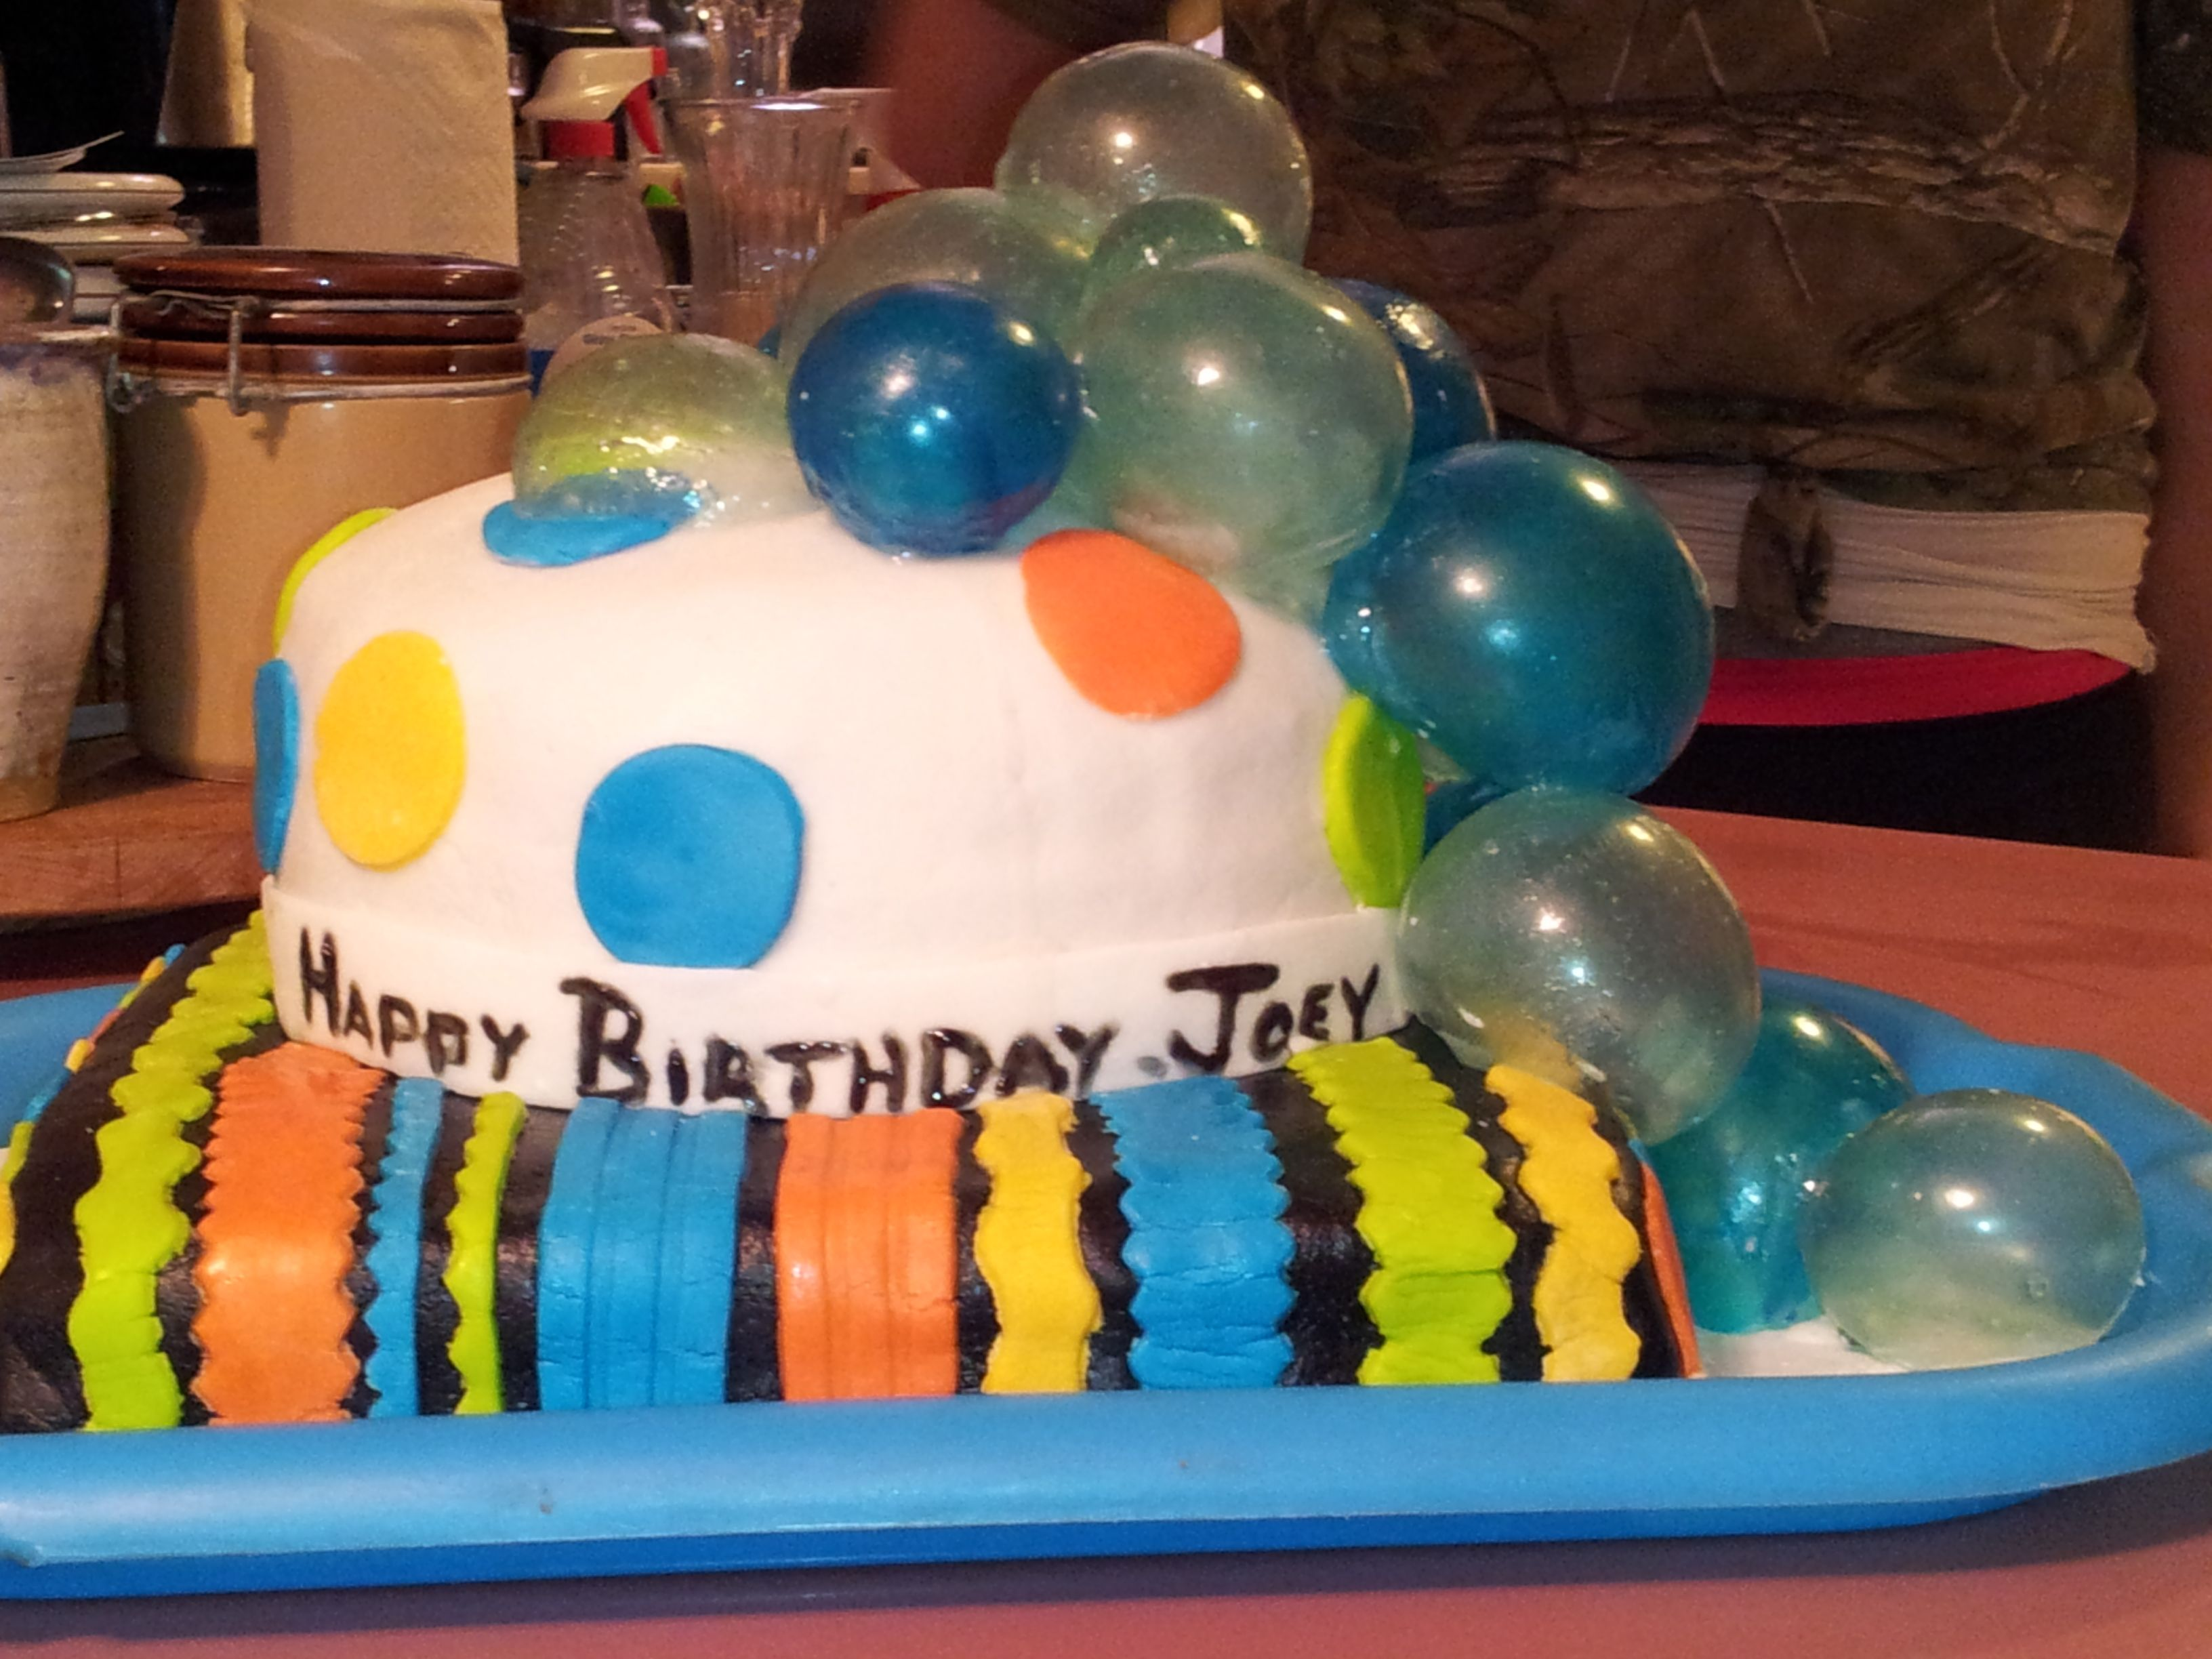 Joey's Birthday cake.  My 2nd time up with cakes.  1st time out with the bubbles.